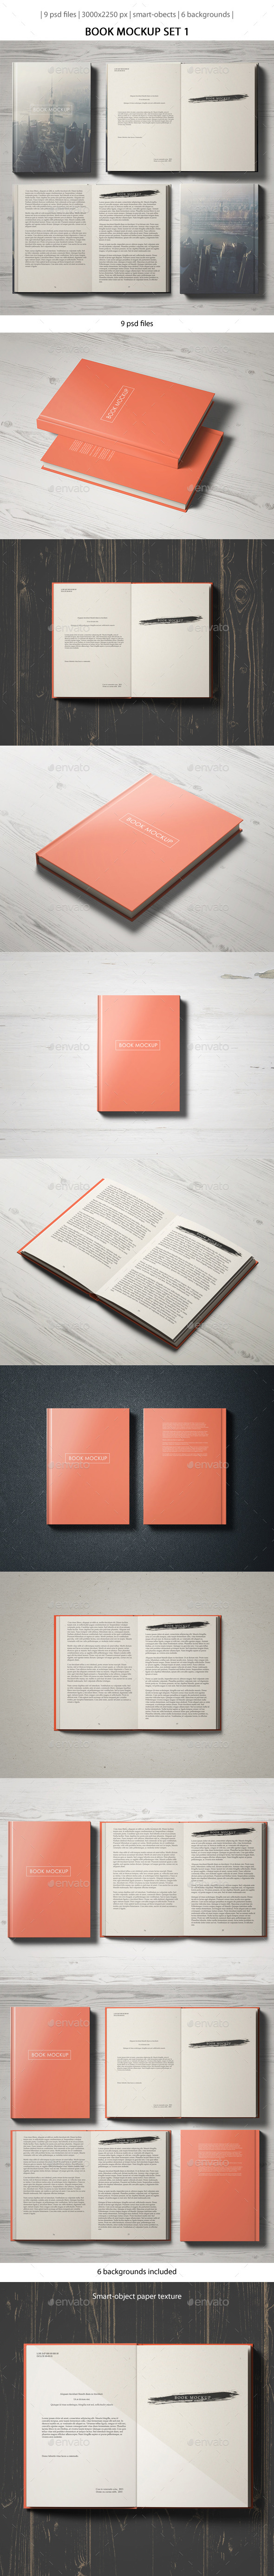 GraphicRiver Book Mockup Set 1 10354620